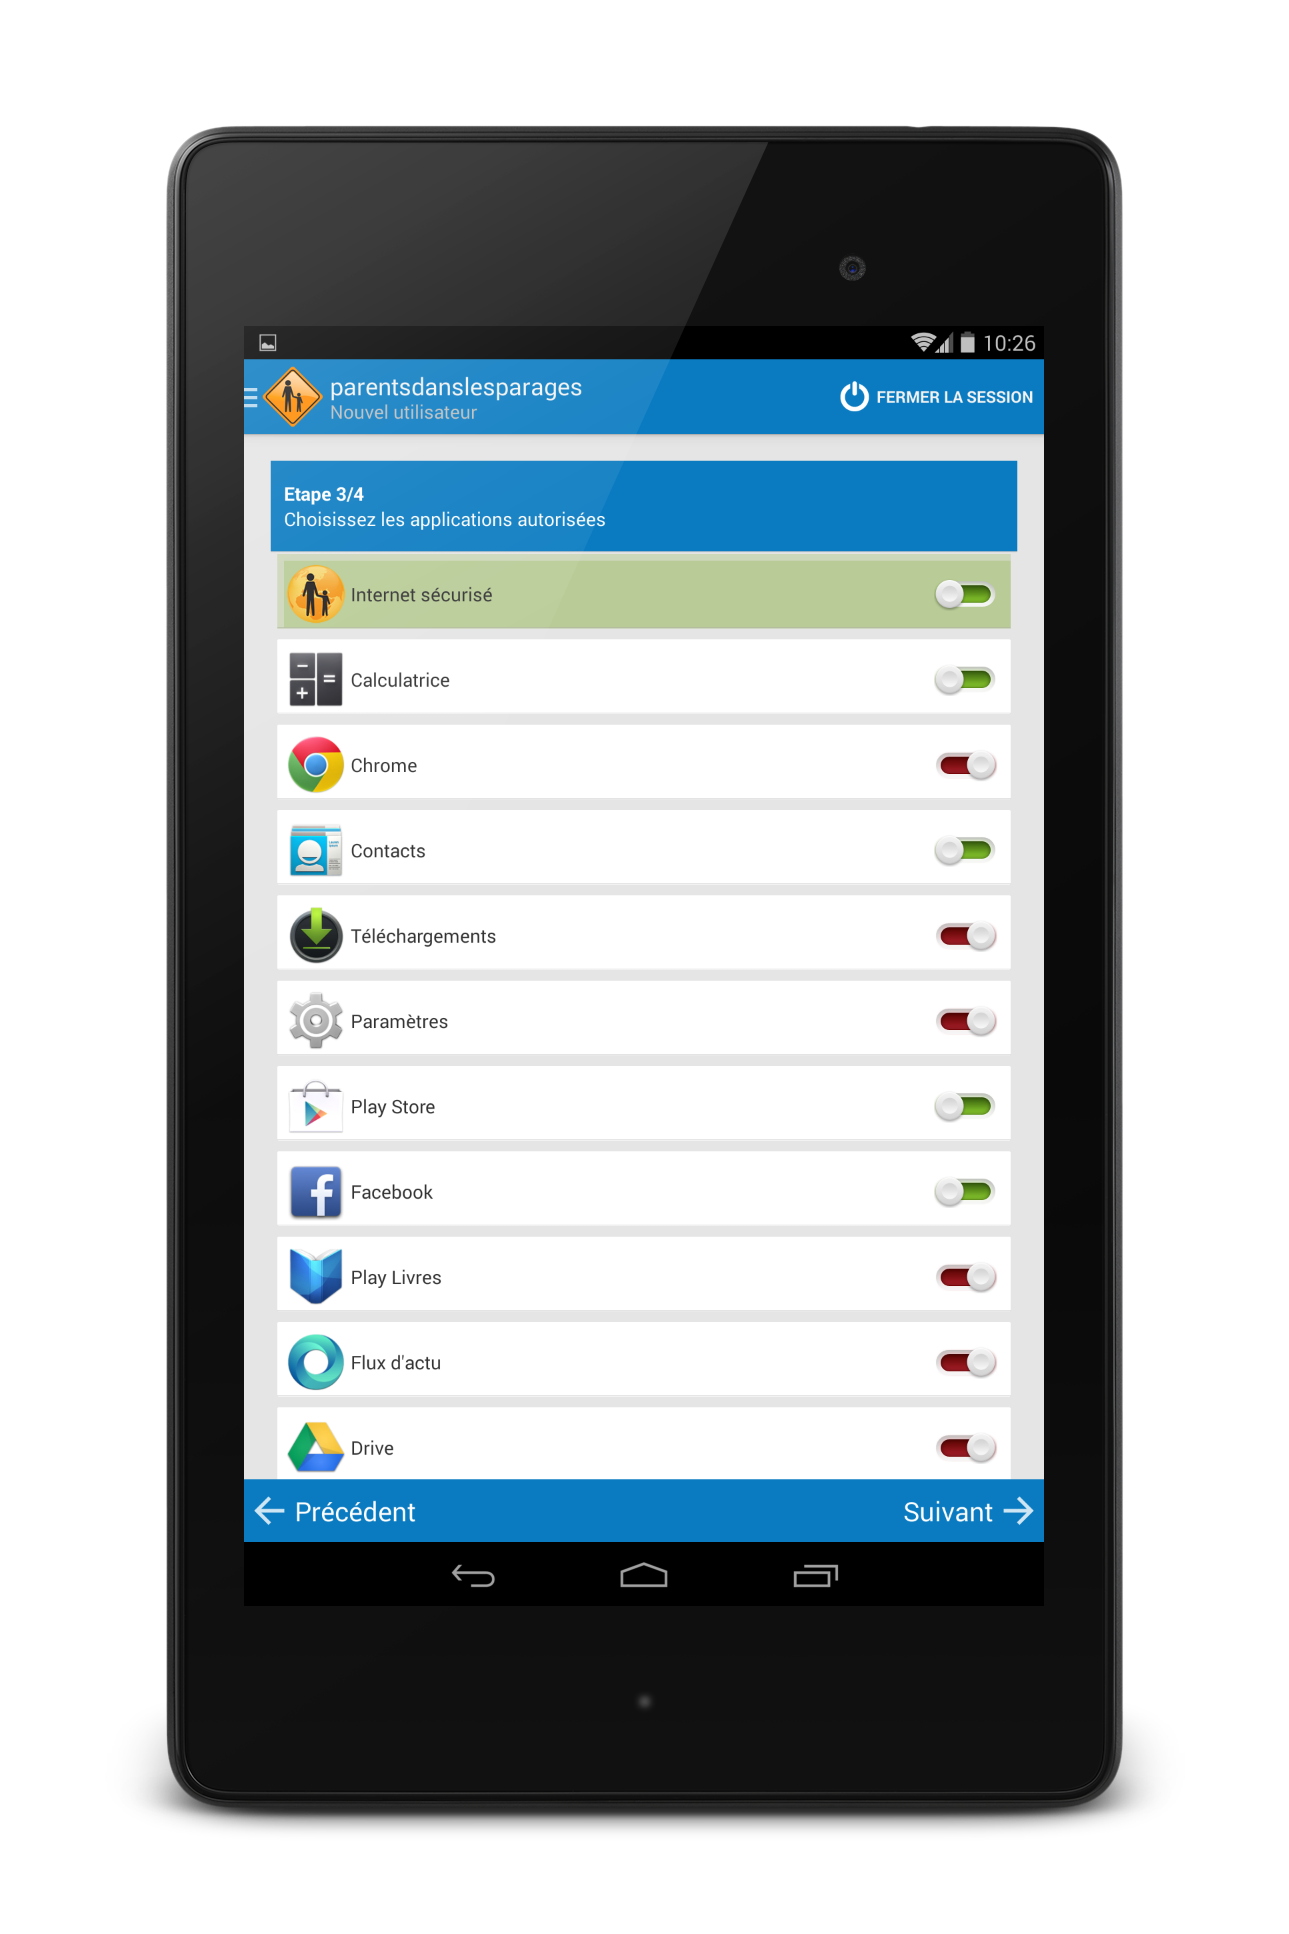 applications android autorisées